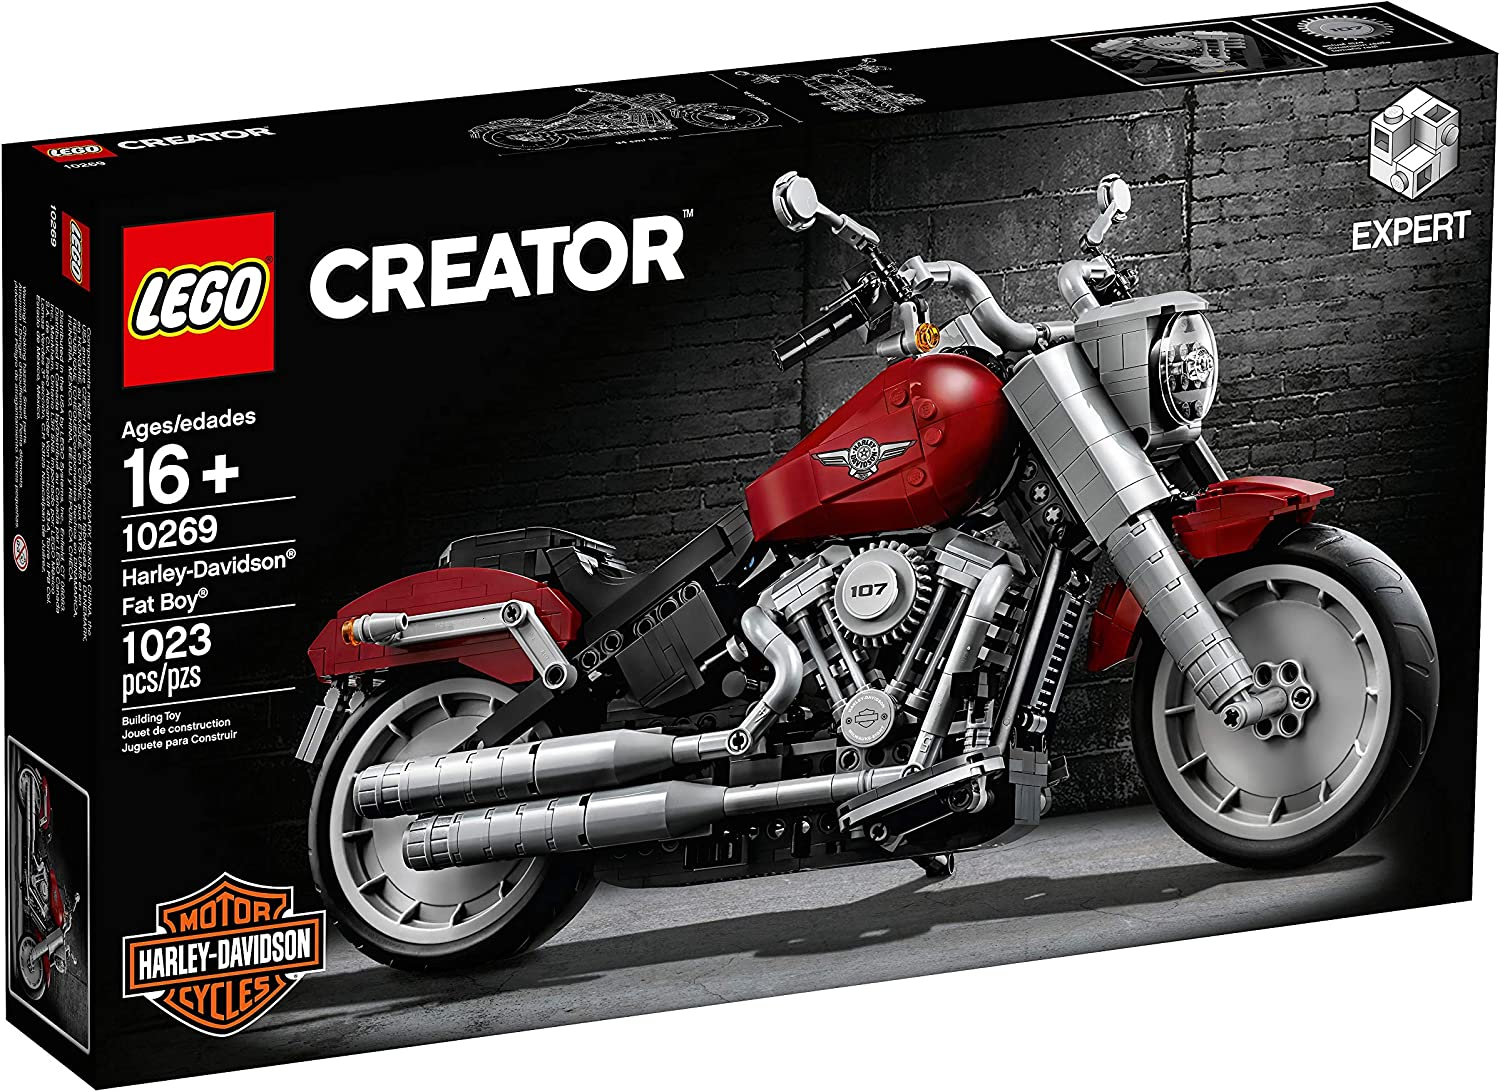 Top 7 Best LEGO Motorcycle Sets Reviews in 2020 3